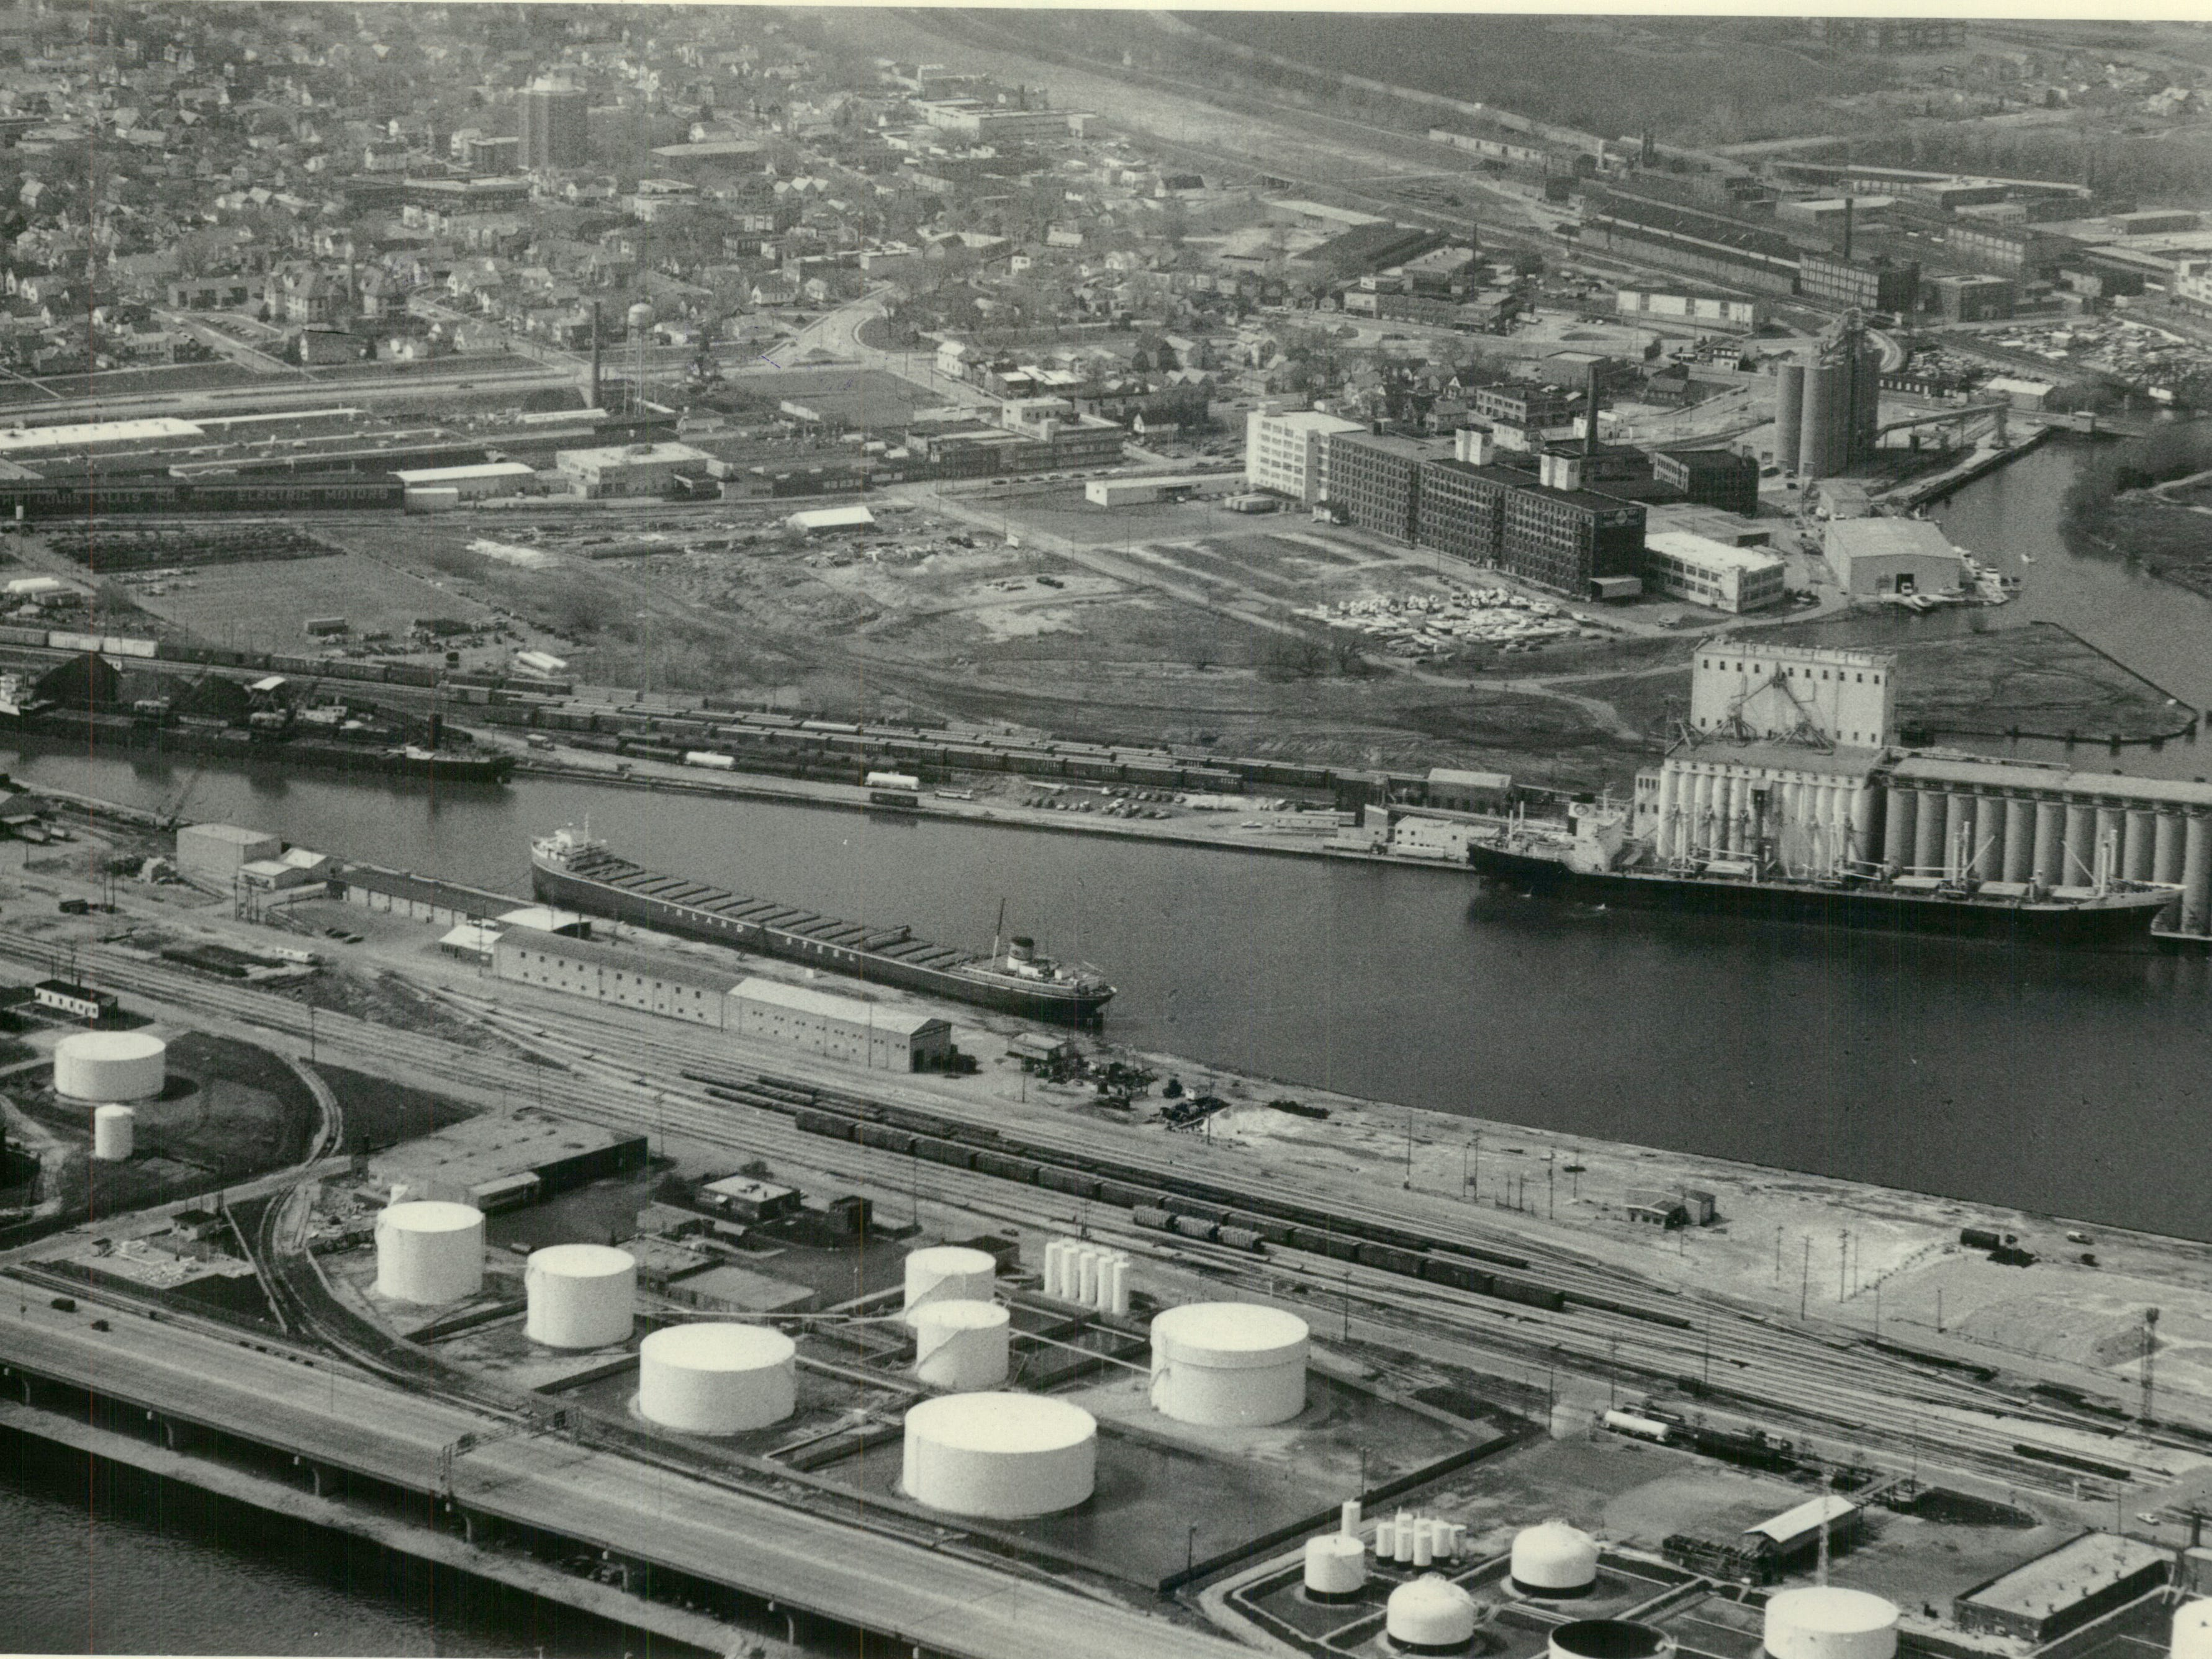 Fuel storage tanks line the south portion of Jones Island (foreground) in this aerial view looking west across the Kinnickinnic River.  Jones Island-Aerial